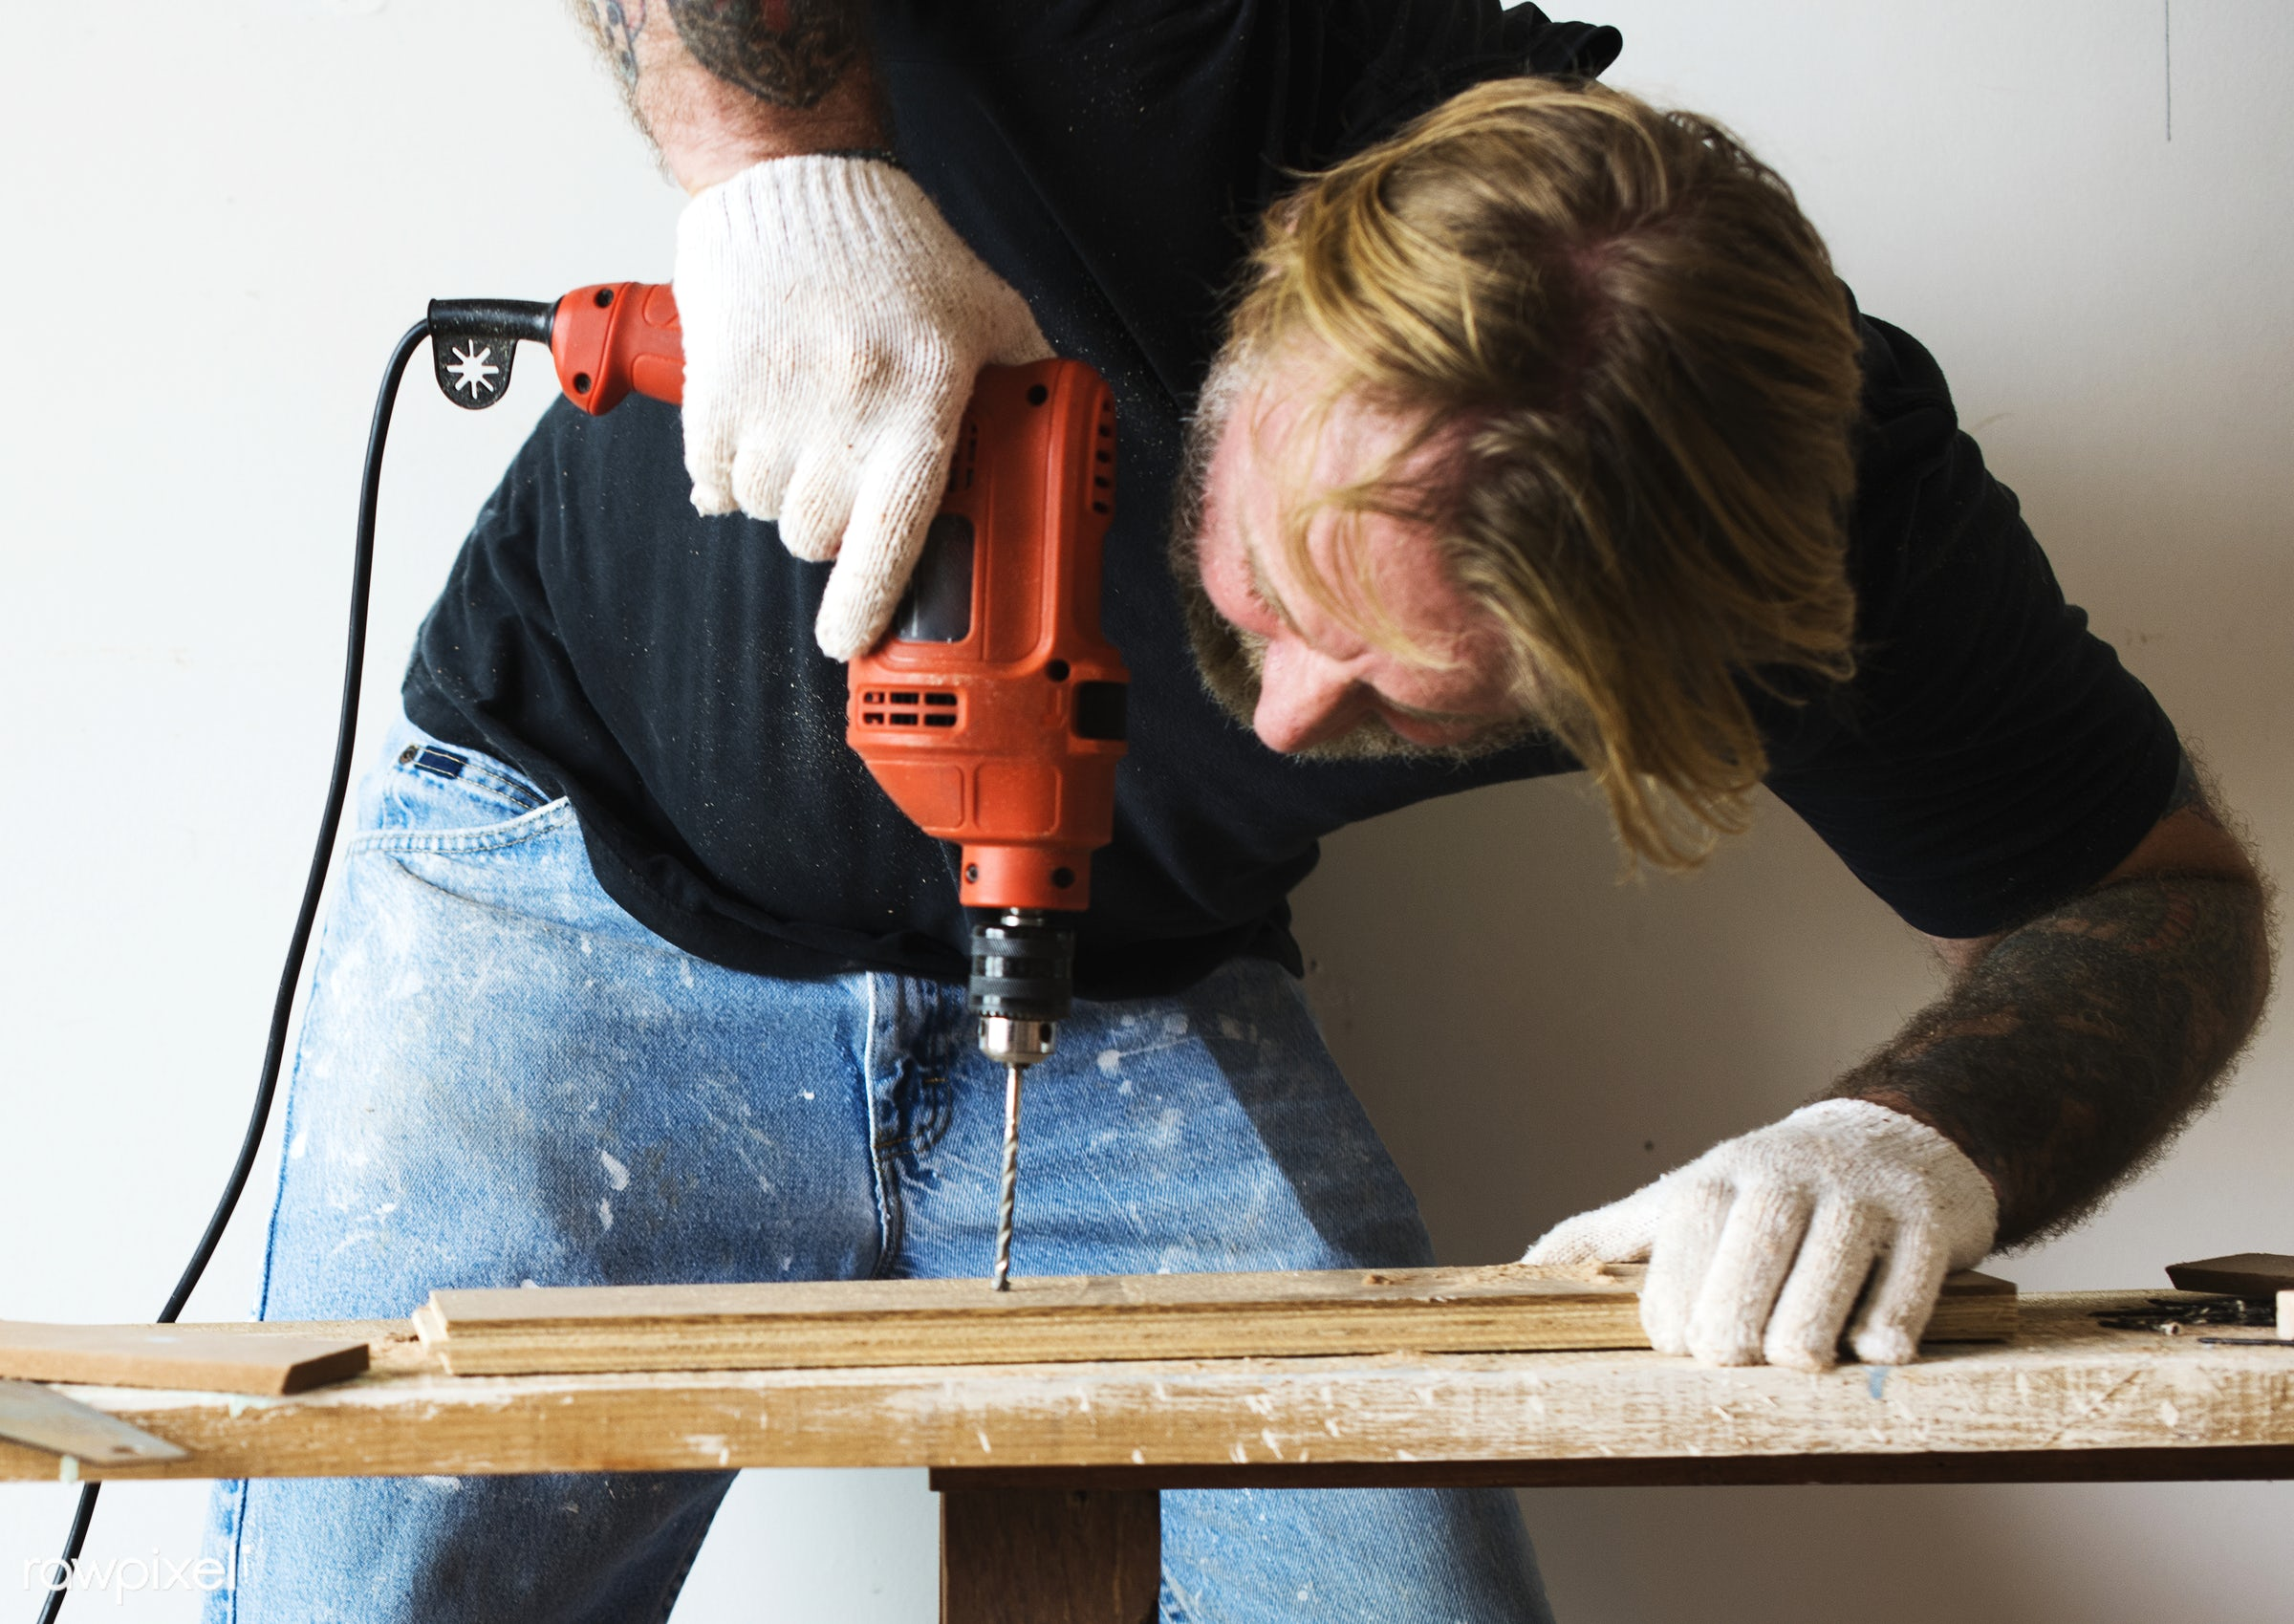 craft, wood, carpentry, tool, plank, equipment, diy, carpenter, handyman, craftsman, worker, drill, repair, tattoo, industry...